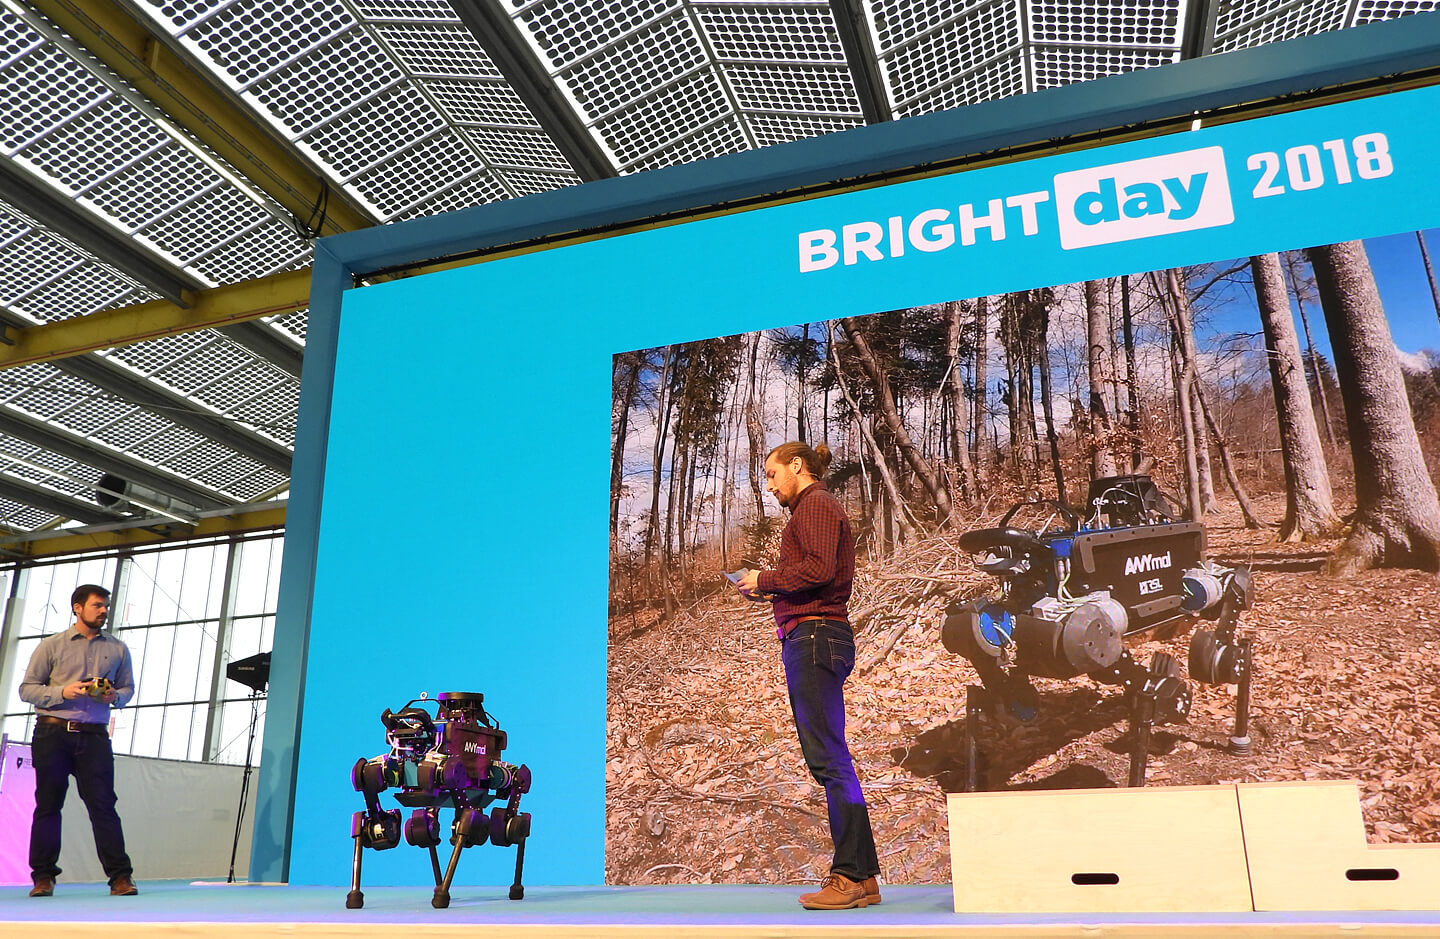 Bright Day 2018 robots